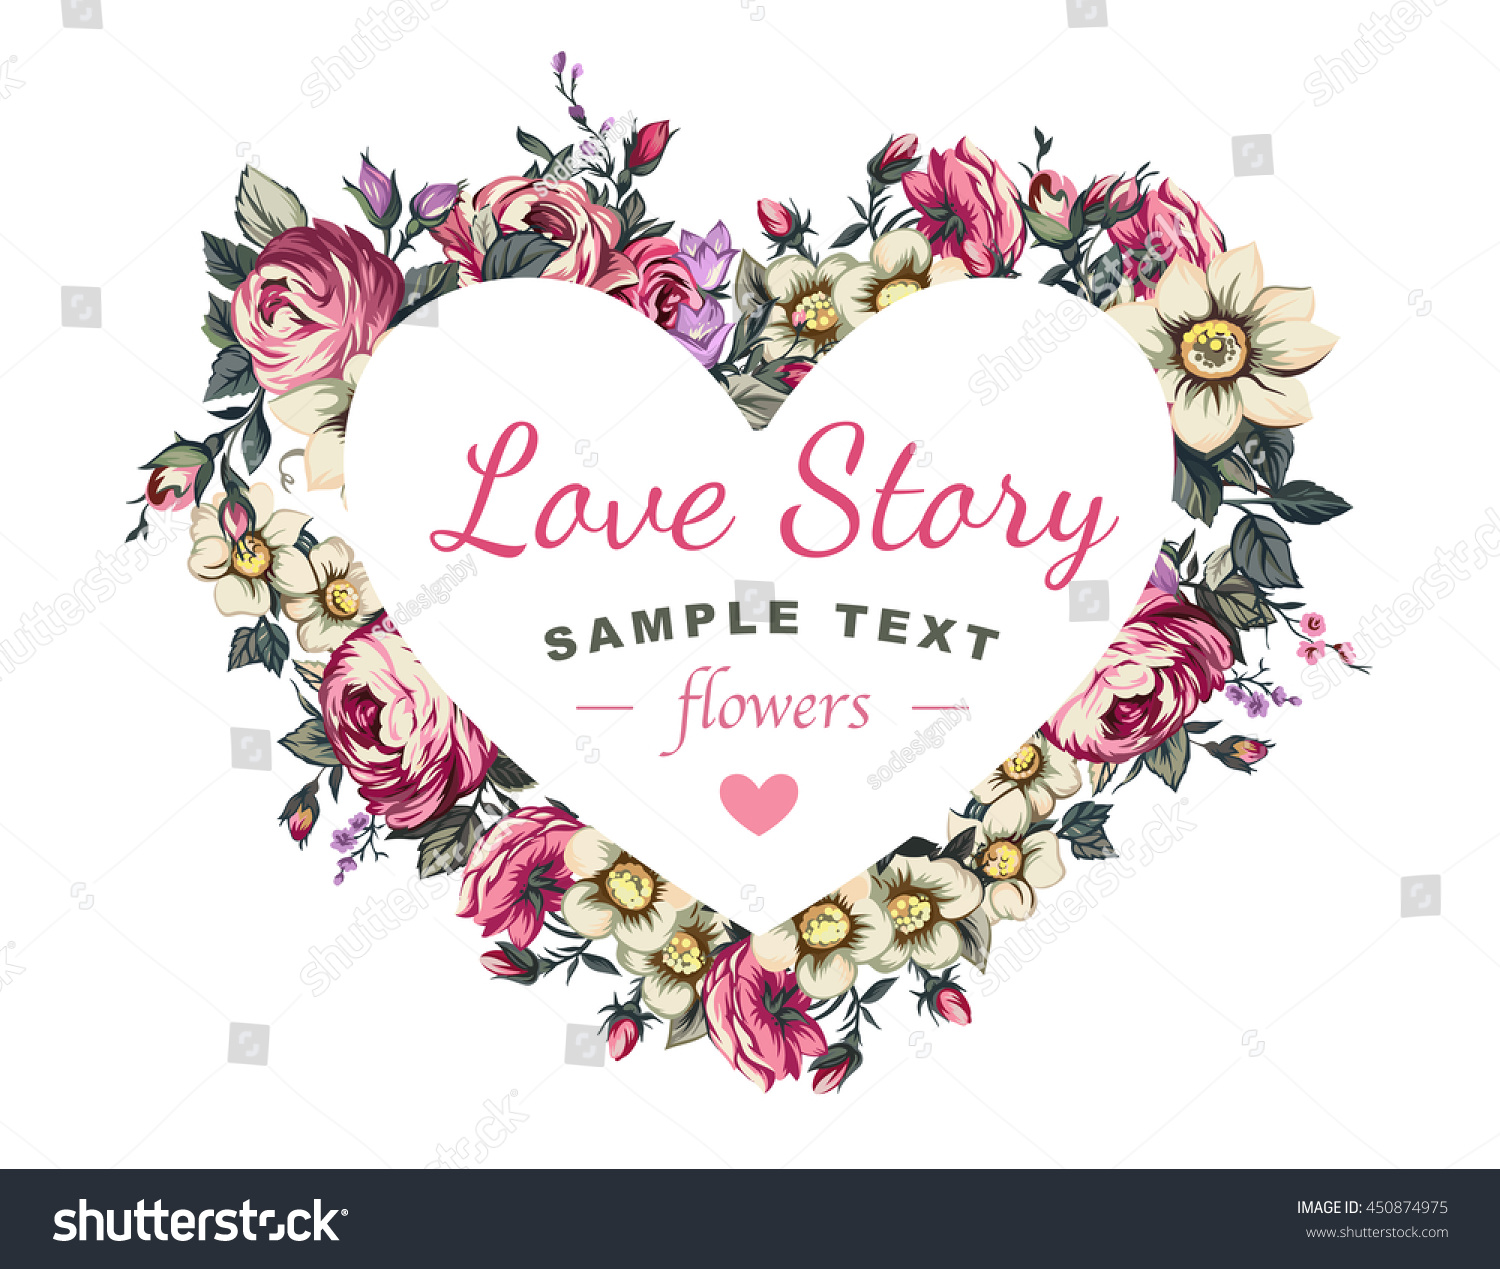 Heart flowers gift your loved stock vector 450874975 shutterstock heart and flowers gift for your loved negle Choice Image